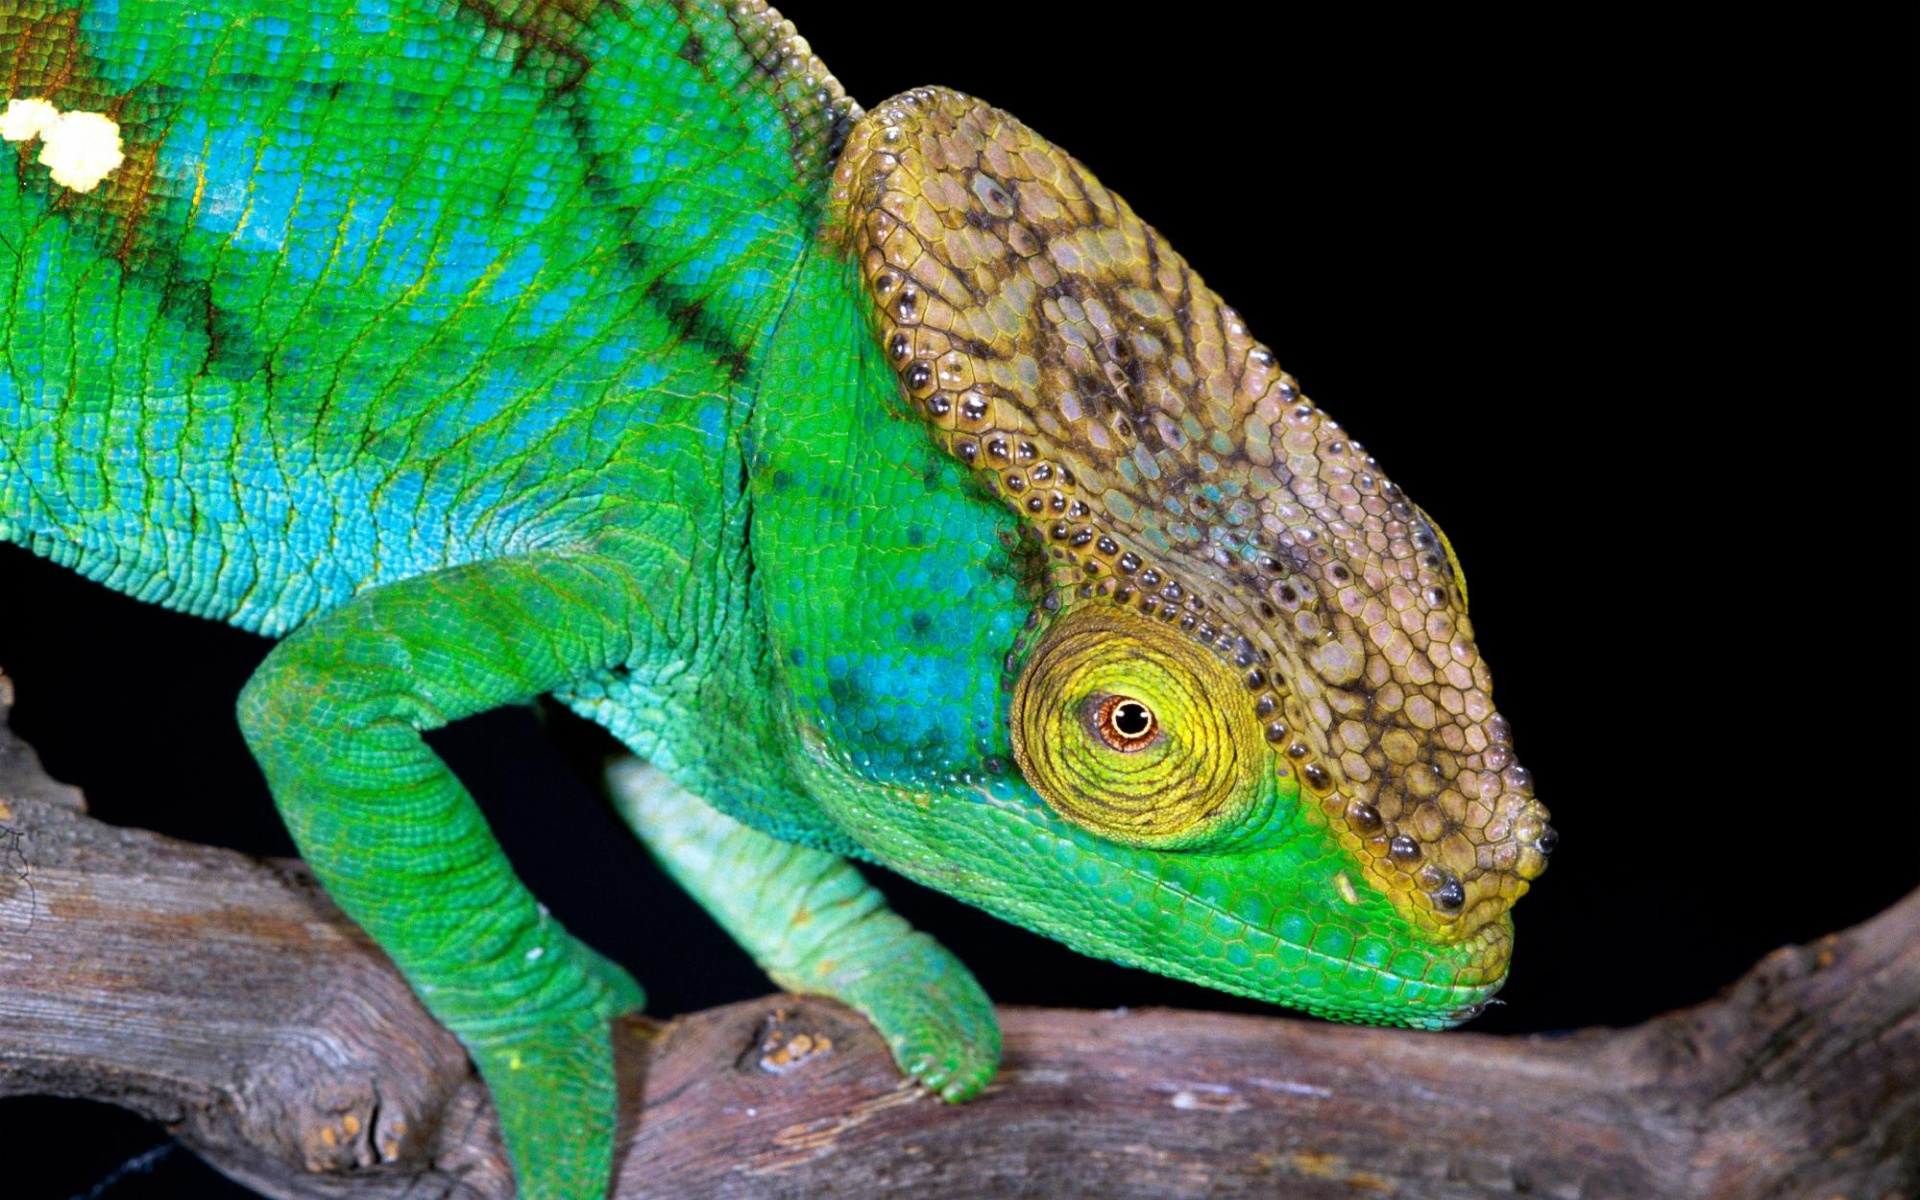 green chameleon widescreen wallpaper - photo #5